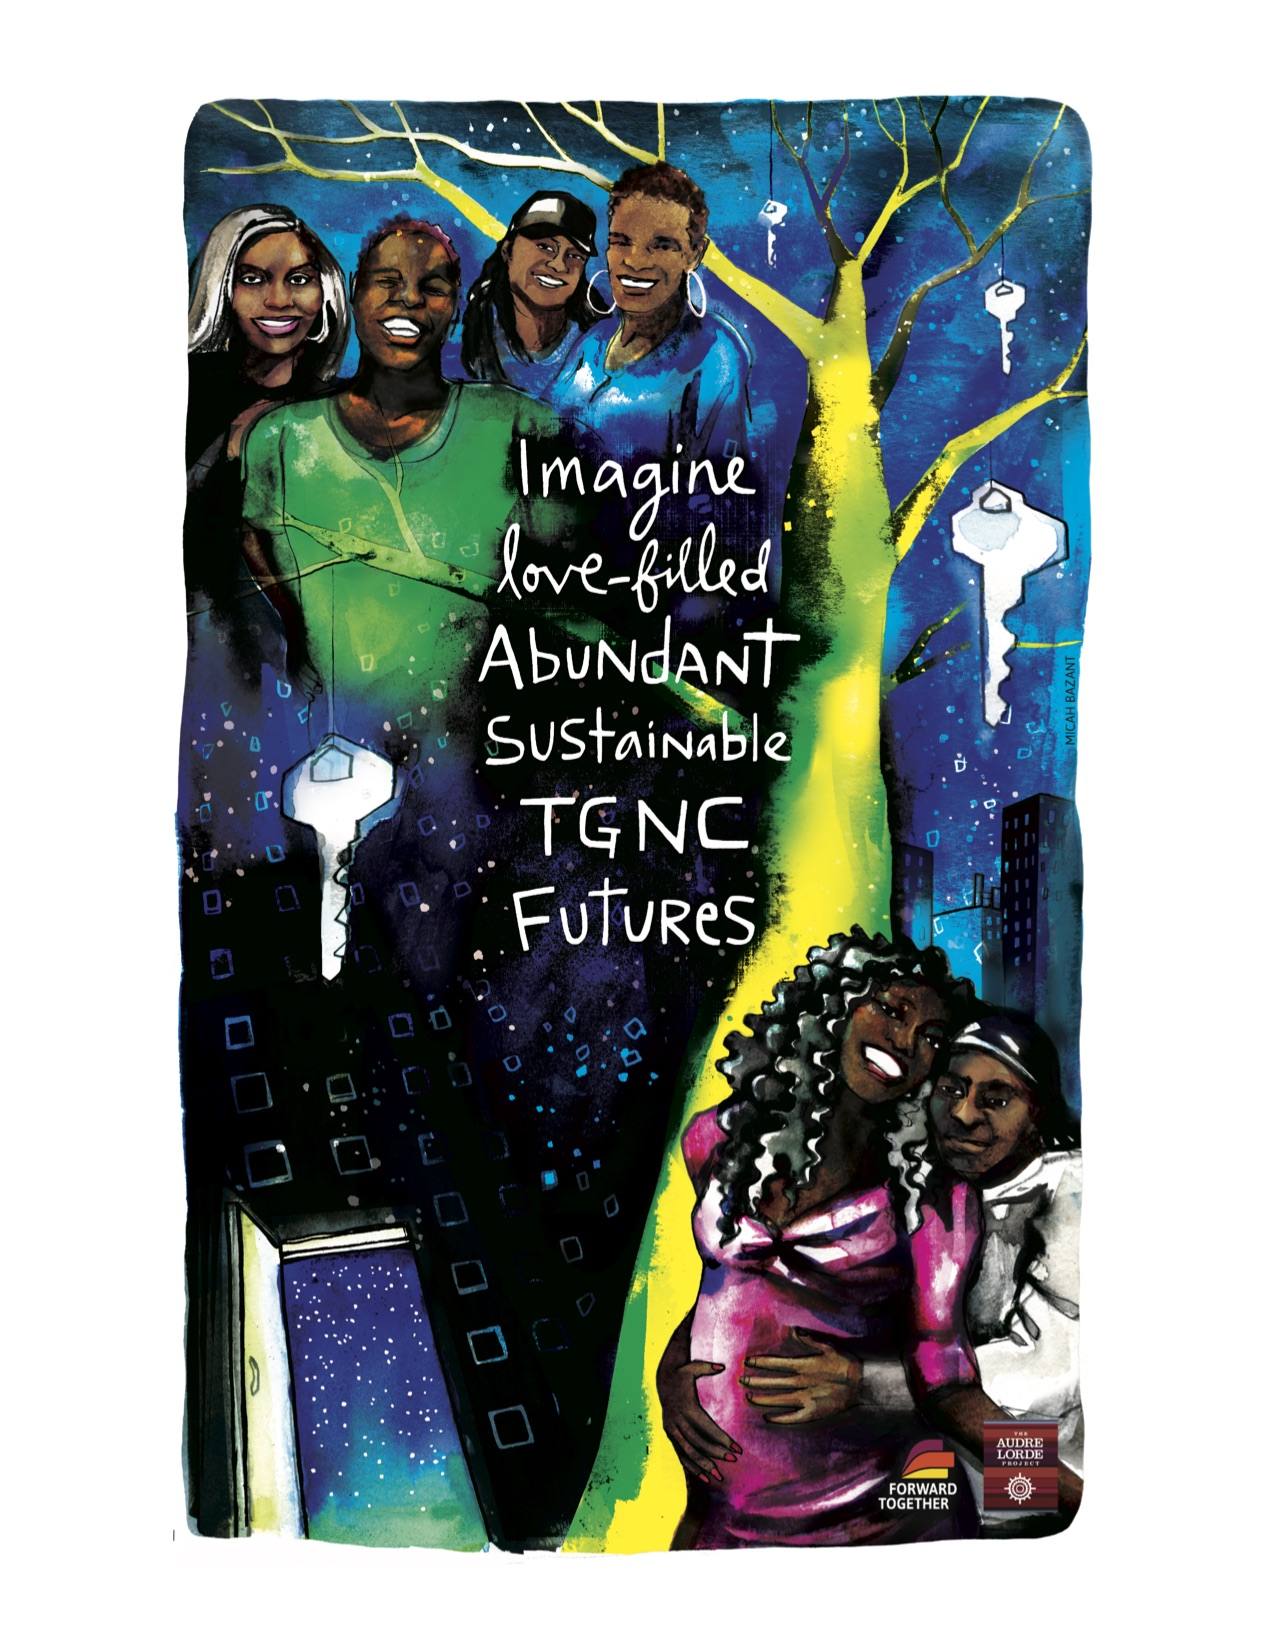 Imagine love-filled, abundant, sustainable TGNC (trans and gender non-conforming) futures. Artwork by Micah Bizant (click the image to go to more of Micah's work). Please click    here    to go to Forward Together.